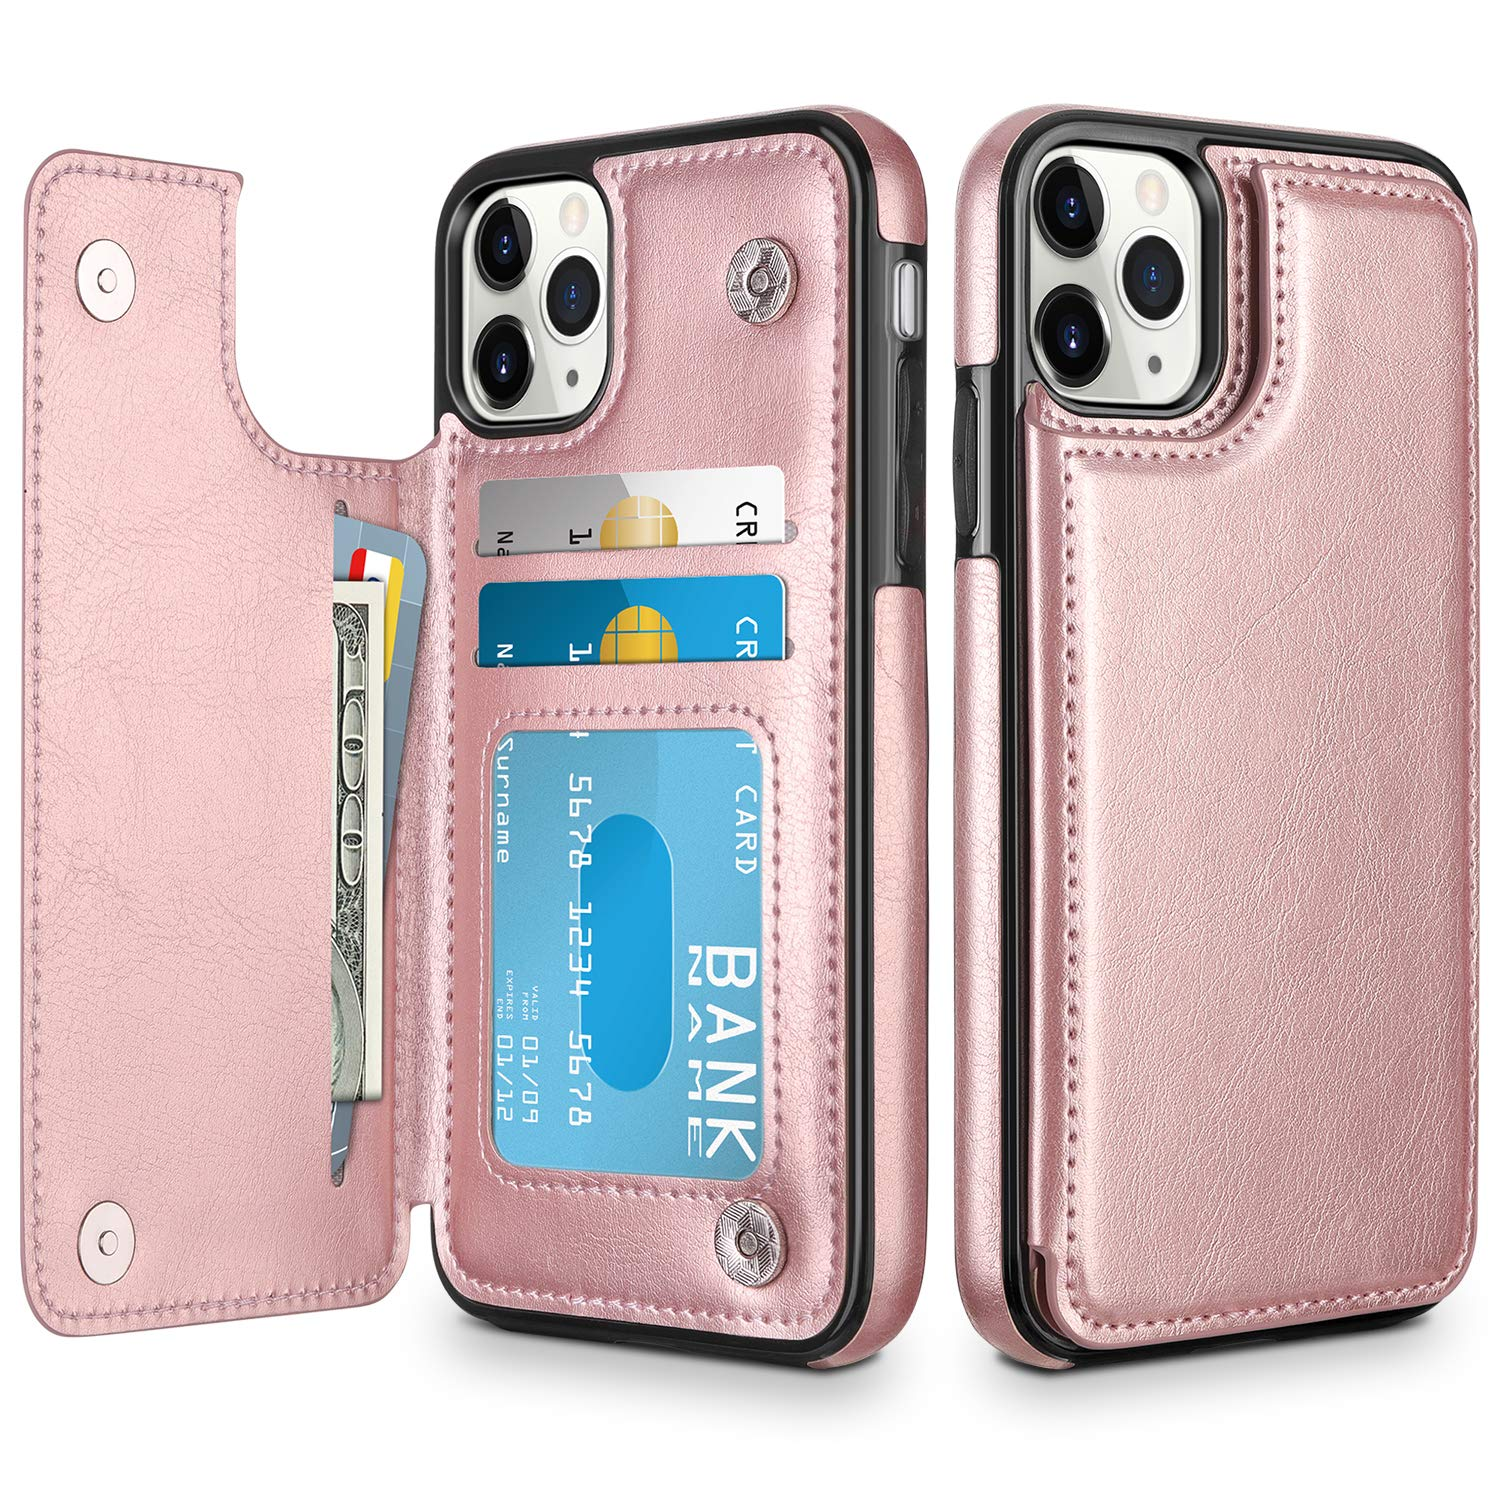 HianDier Wallet Case for iPhone 11 Pro Case Slim Protective Case with Credit Card Slot Holder Flip Folio Soft PU Leather Magnetic Closure Cover for 2019 iPhone 11 Pro 5.8 Inches, Rose Gold